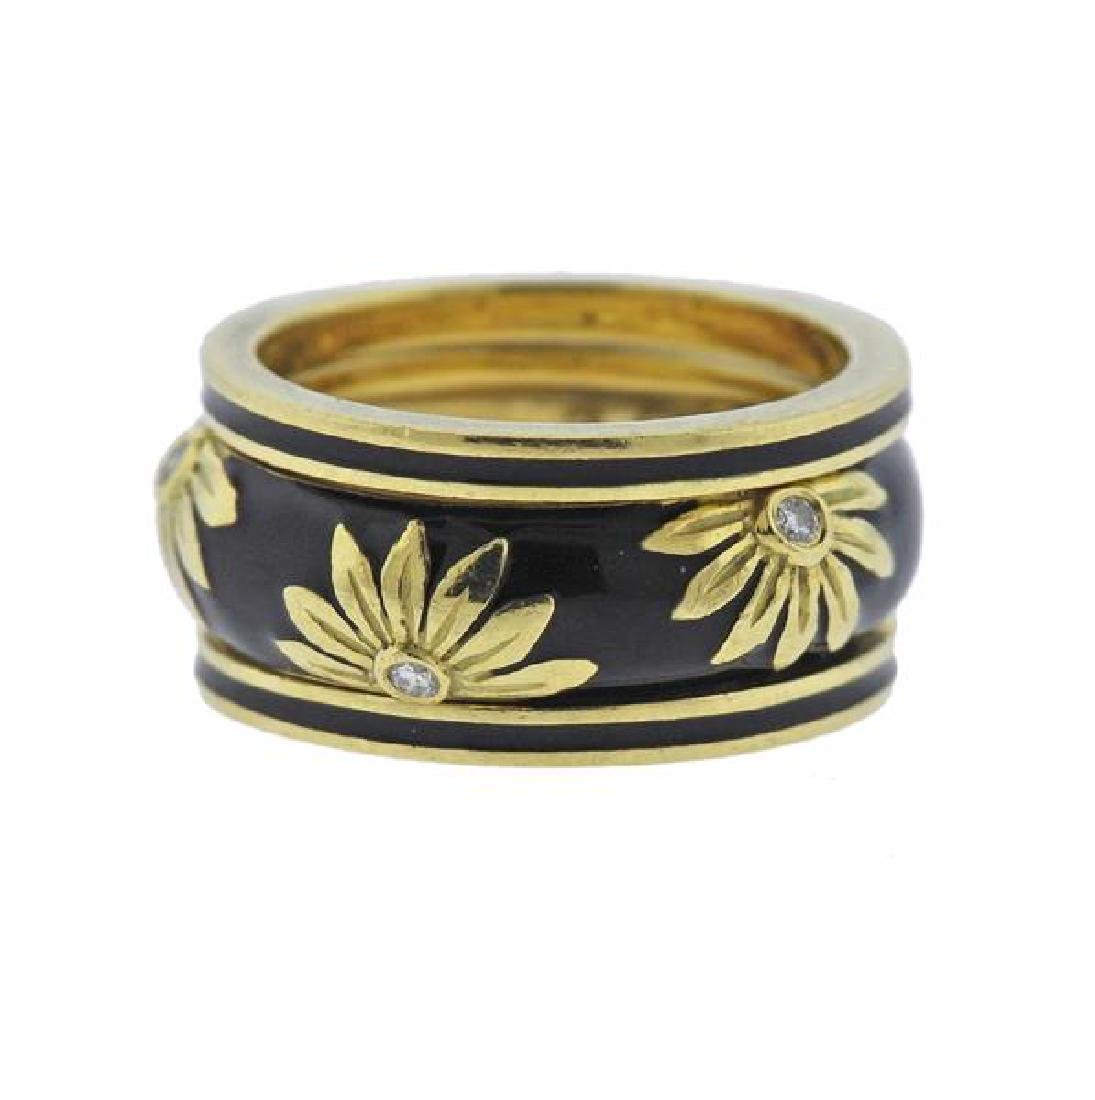 Hidalgo 18K Gold Diamond Enamel Band Ring Lot of 3